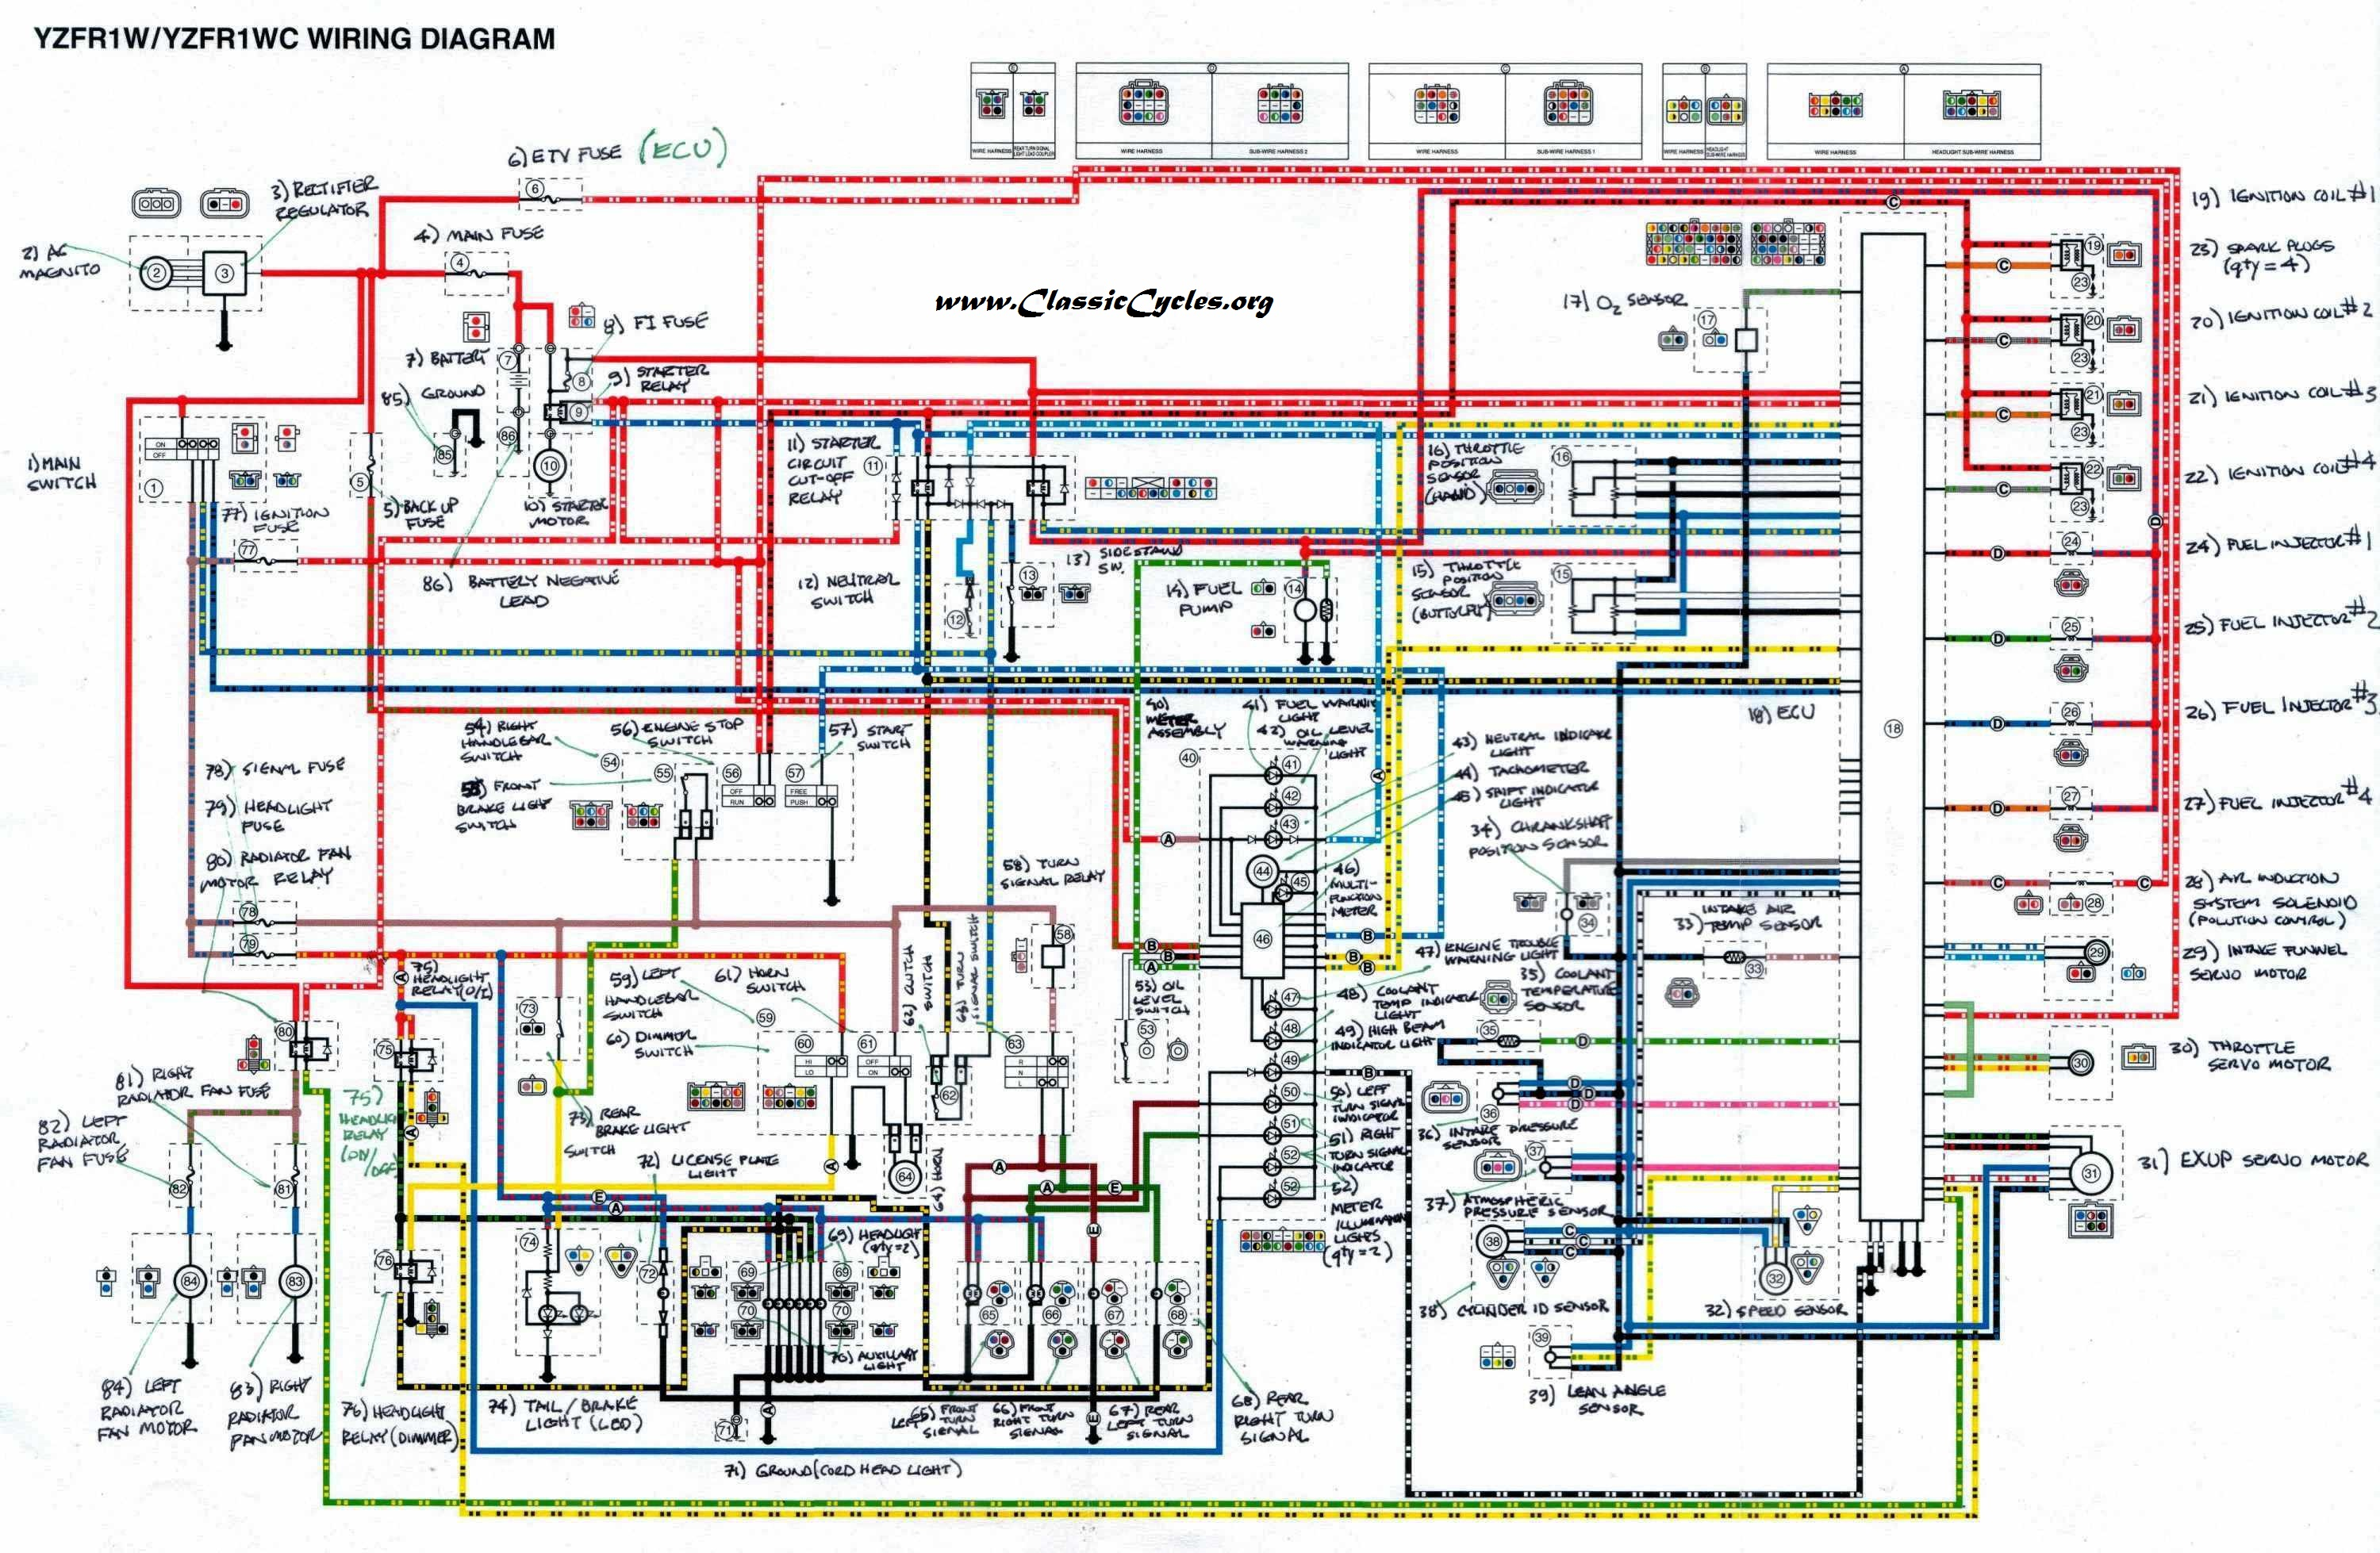 yamaha gx 80 1976 moto radio wiring diagrams yamaha wiring diagrams instruction trimble 750 ez steer wiring diagram at soozxer.org